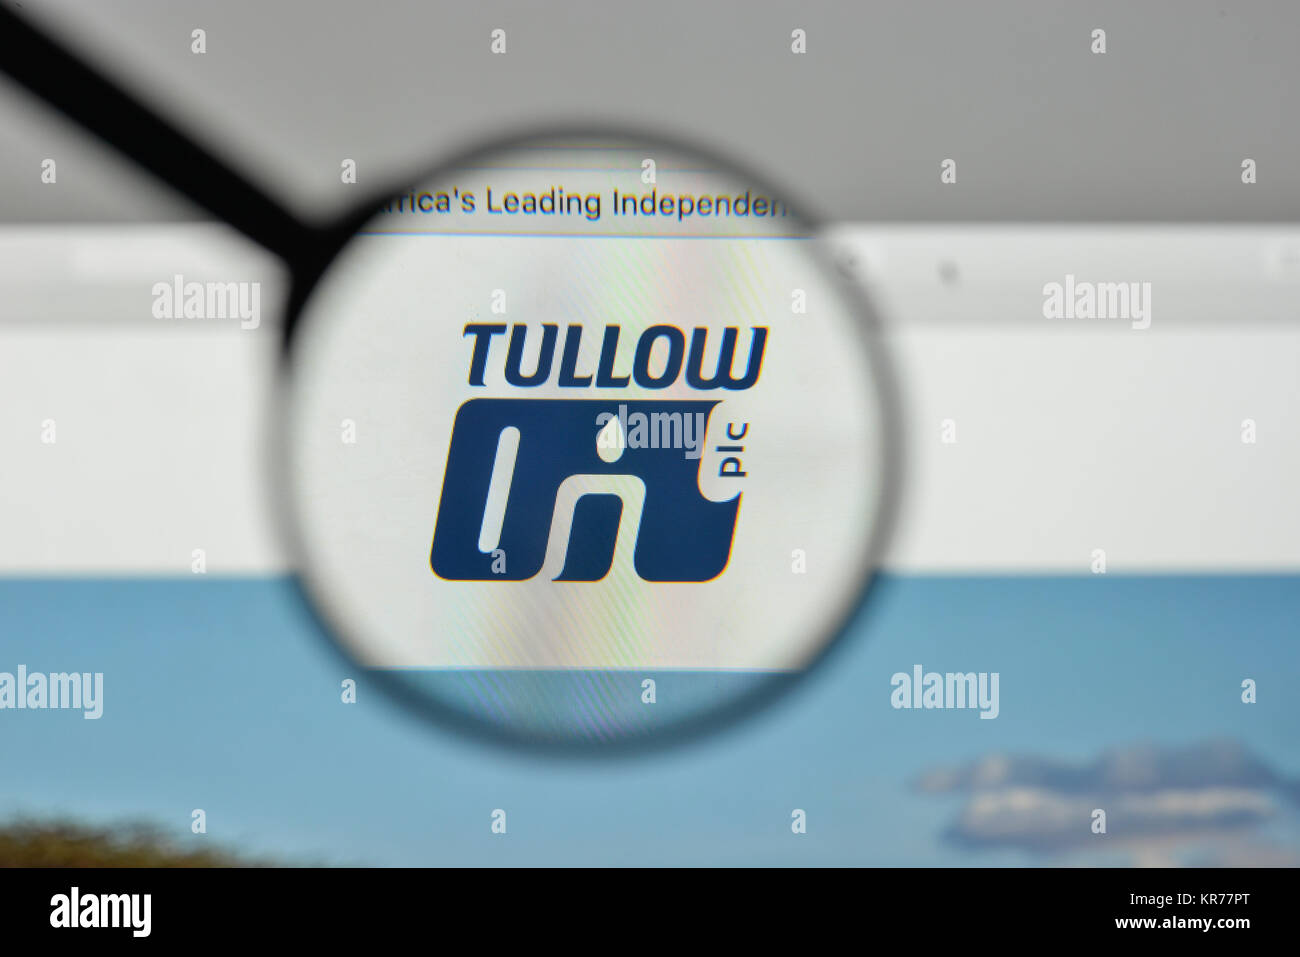 Tullow Youth Project are still here to support - Tullow